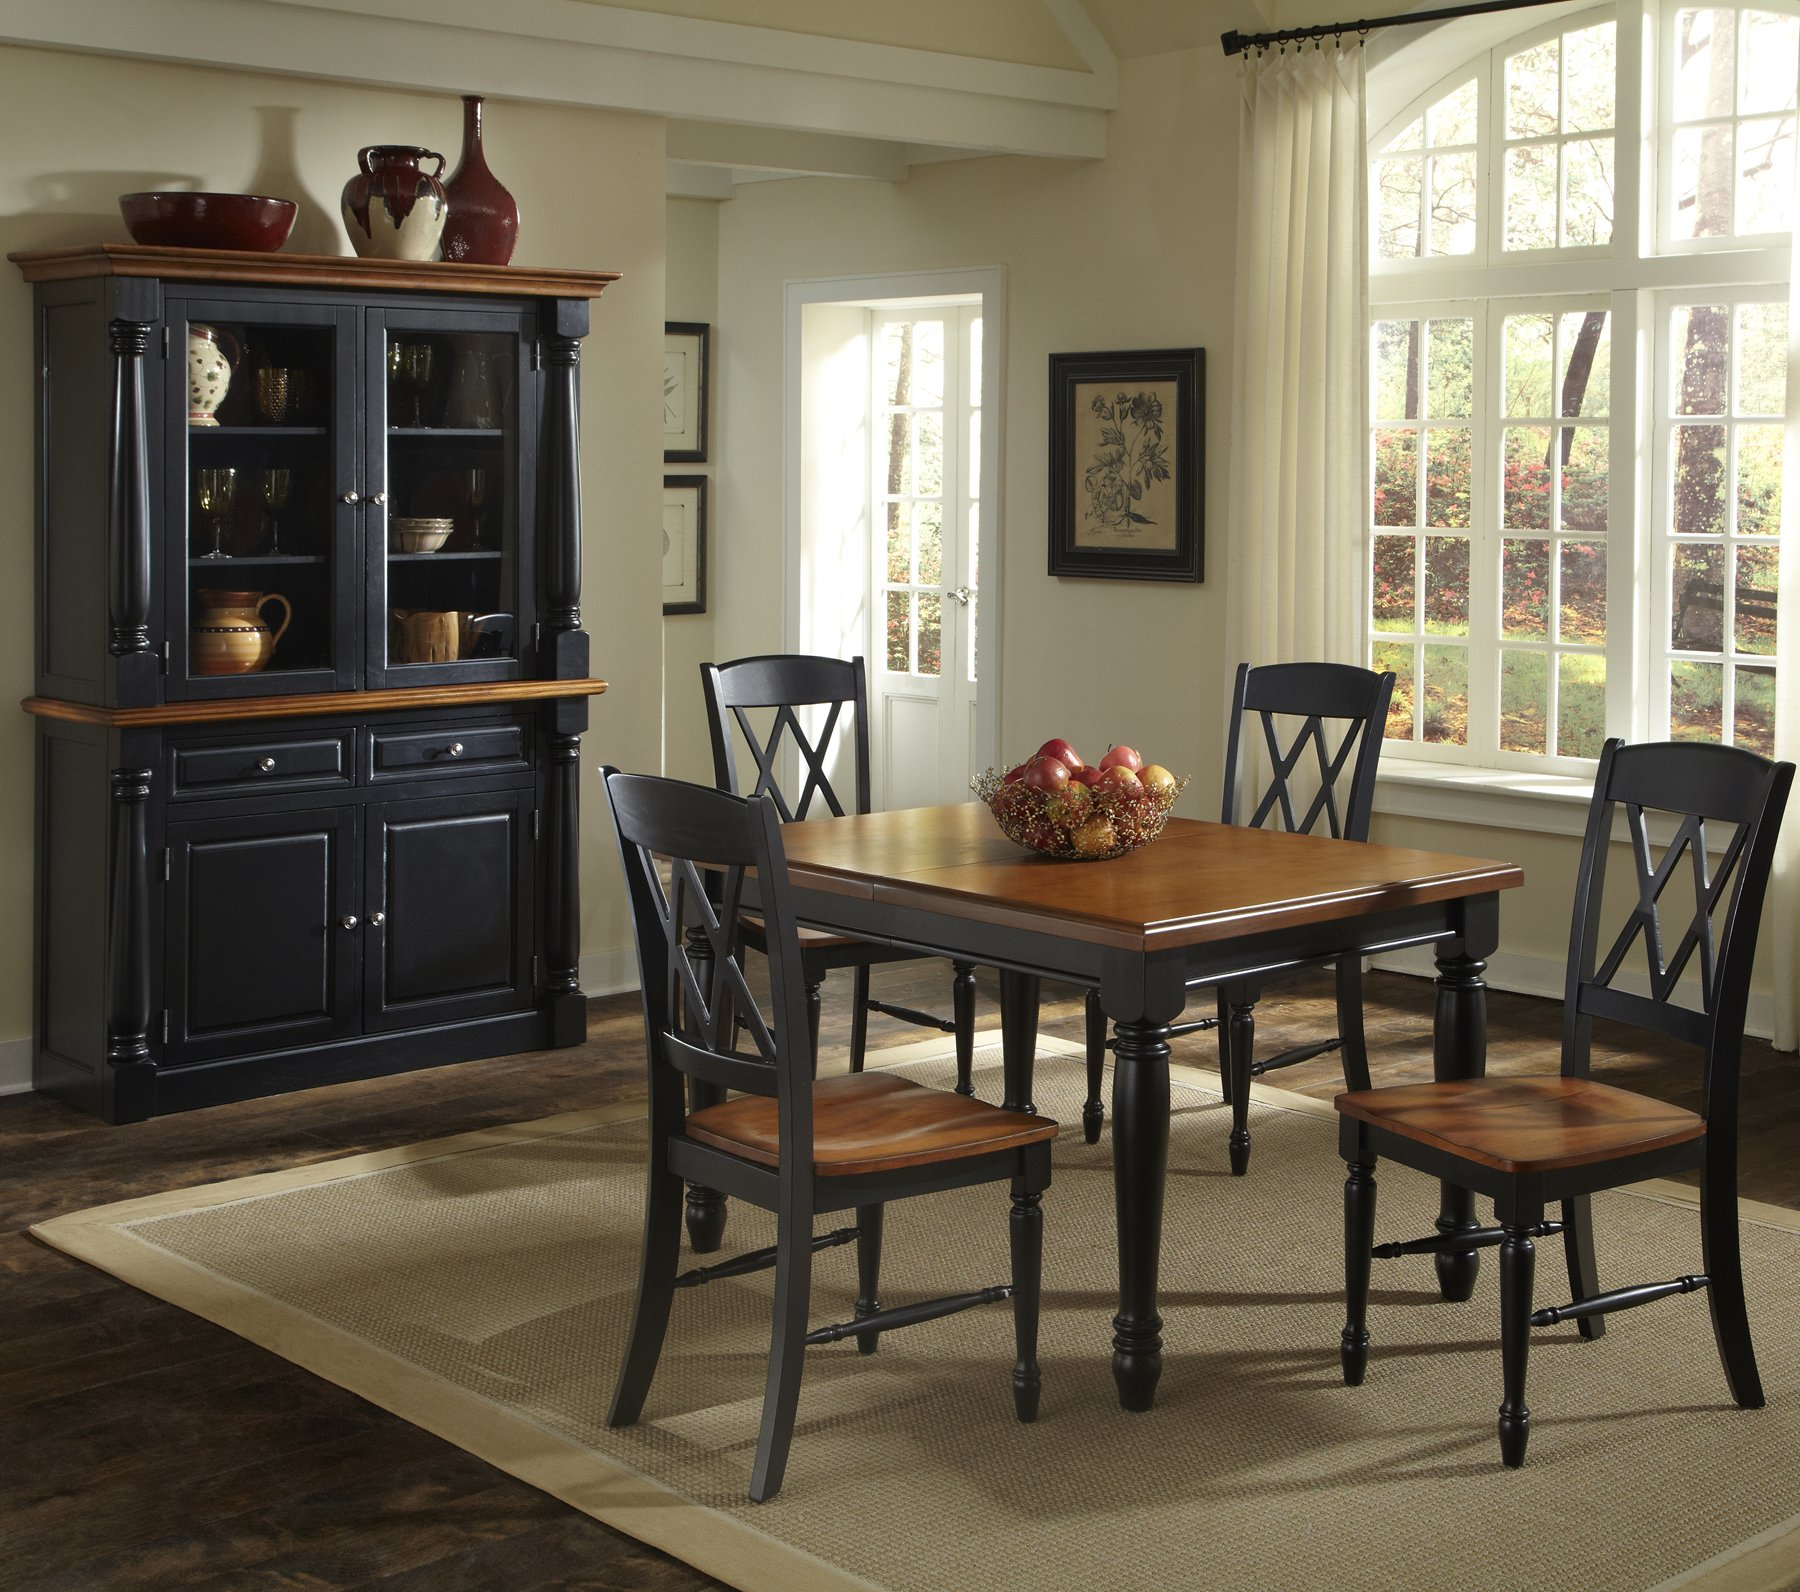 Home Styles 5008 308 Monarch Rectangular Dining Table And 4 Double X Back  Chair